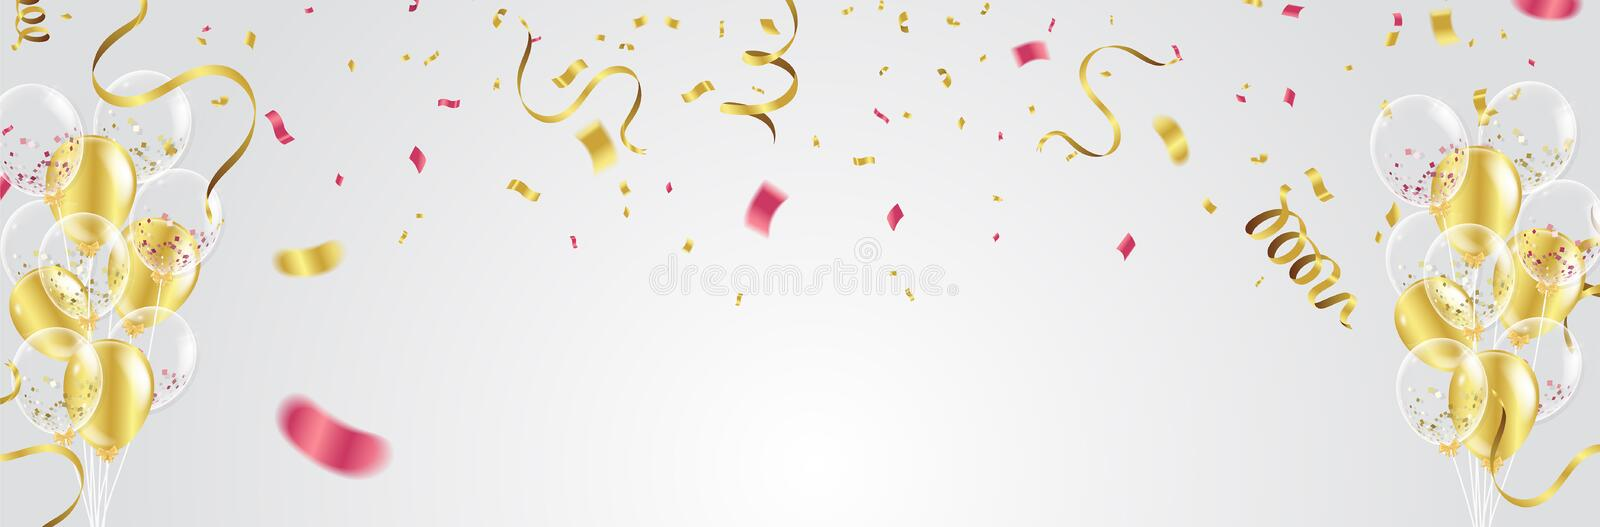 Gold balloons, confetti and streamers on white background. Vector illustration. royalty free illustration